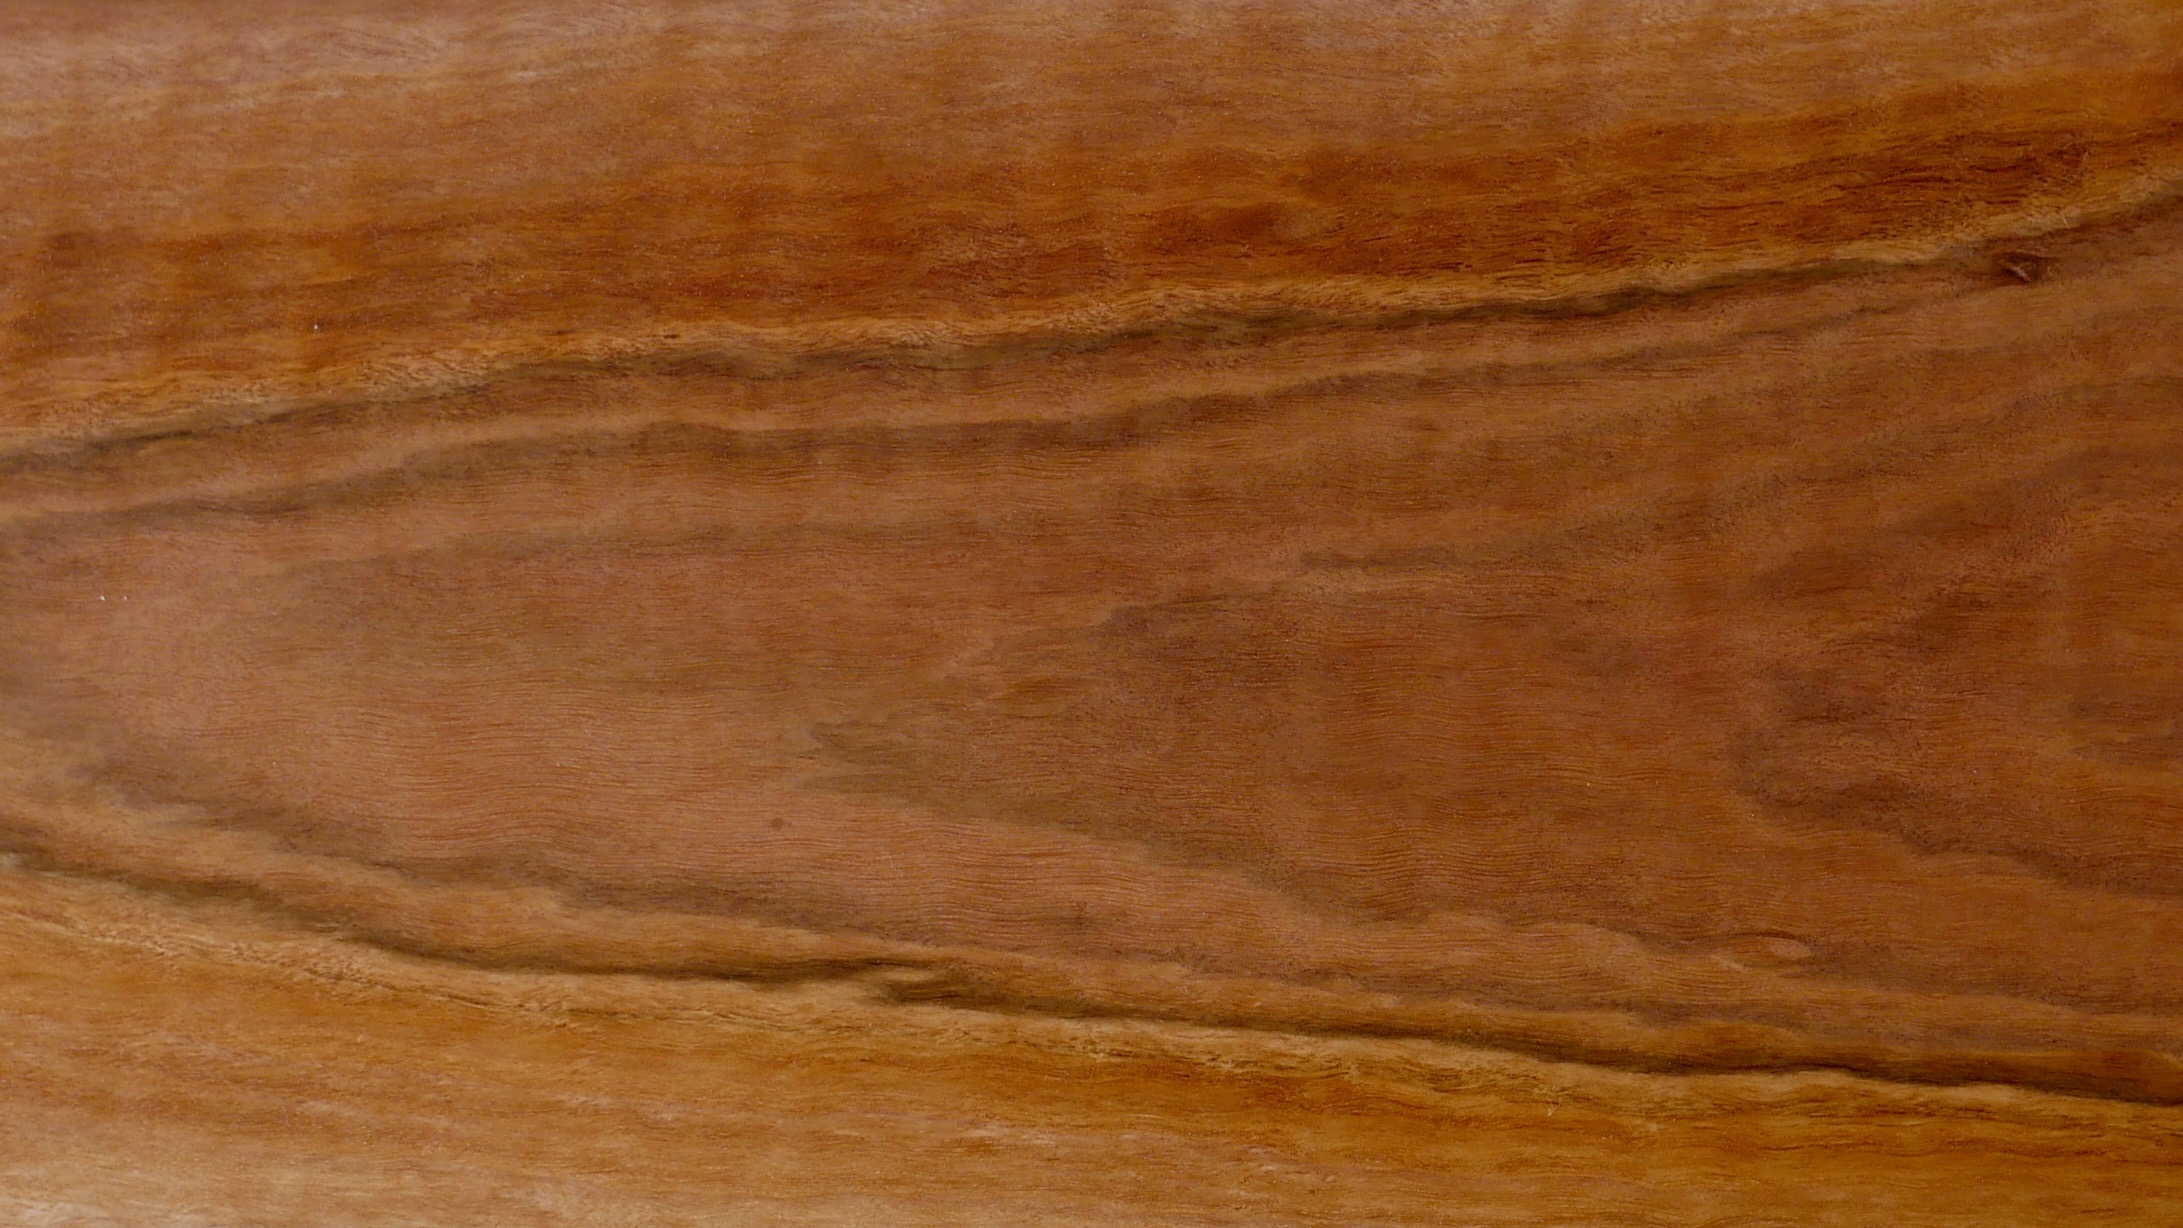 Wandoo - Eucalyptus wandooCareful drying is crucial to preparing this high density wood for use. Only the sharpest tools are suitable for working this stunning, hard to source timber.